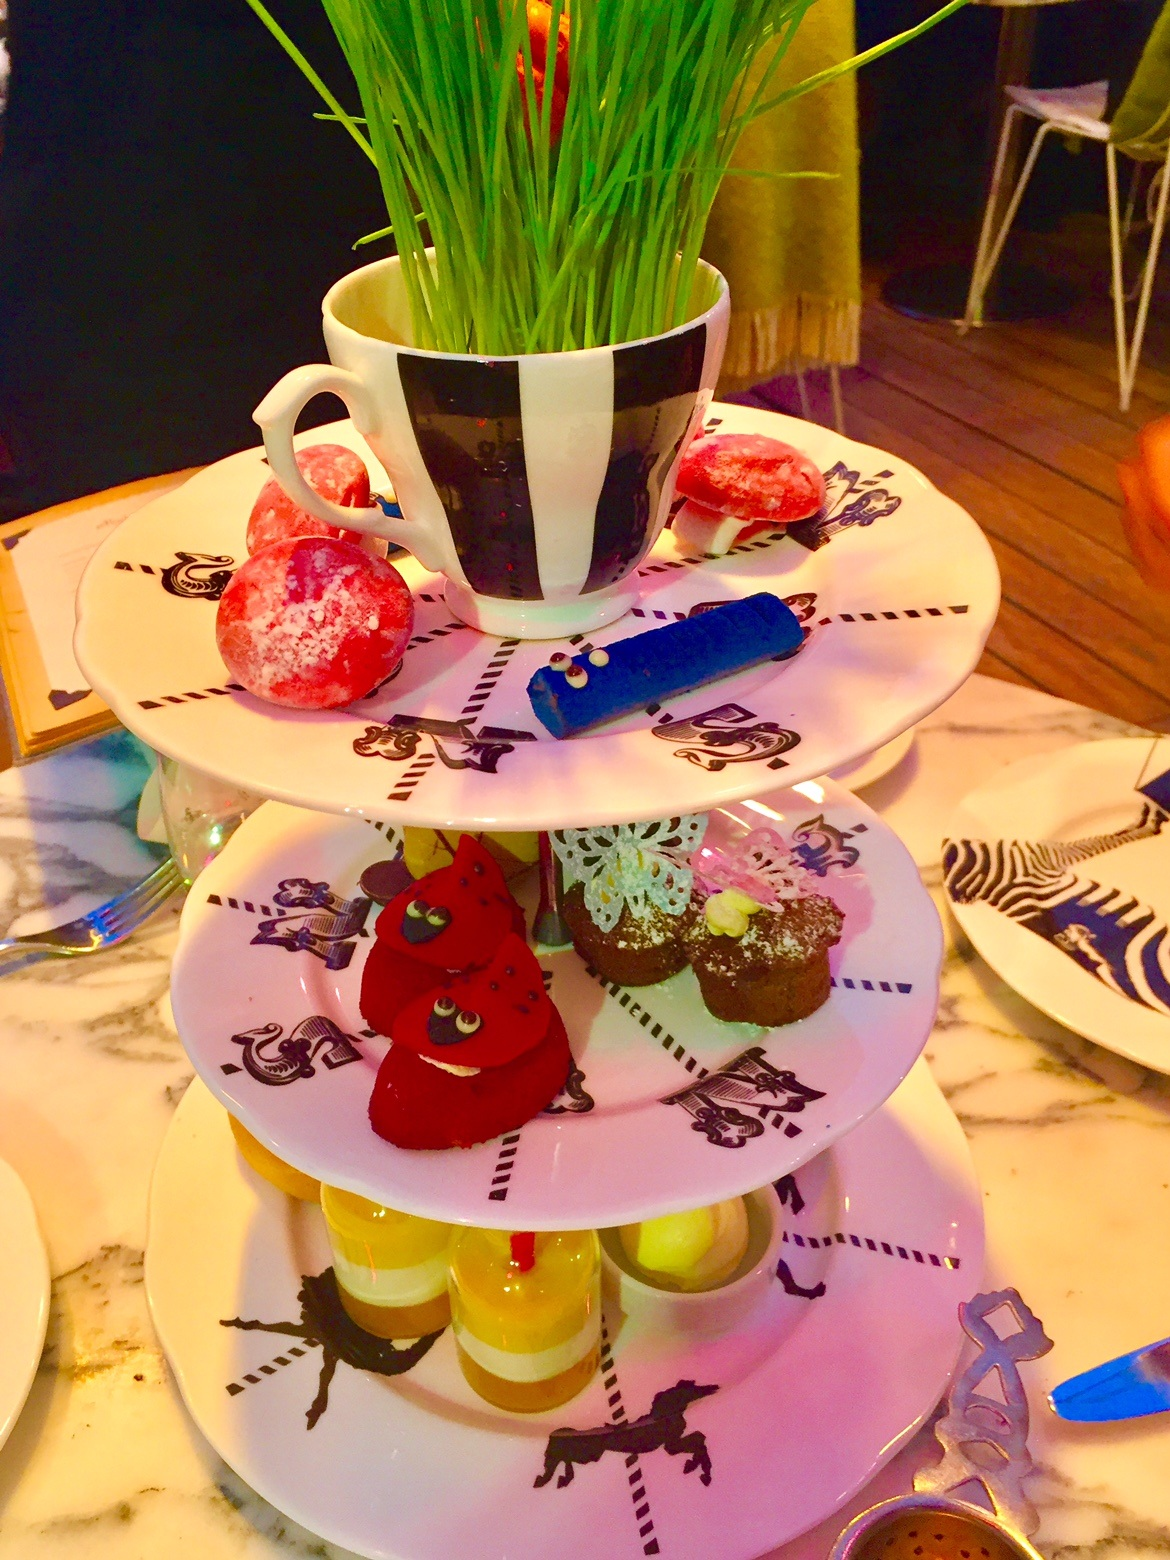 Mad Hatters Afternoon Tea London: The most fun you can have at afternoon tea